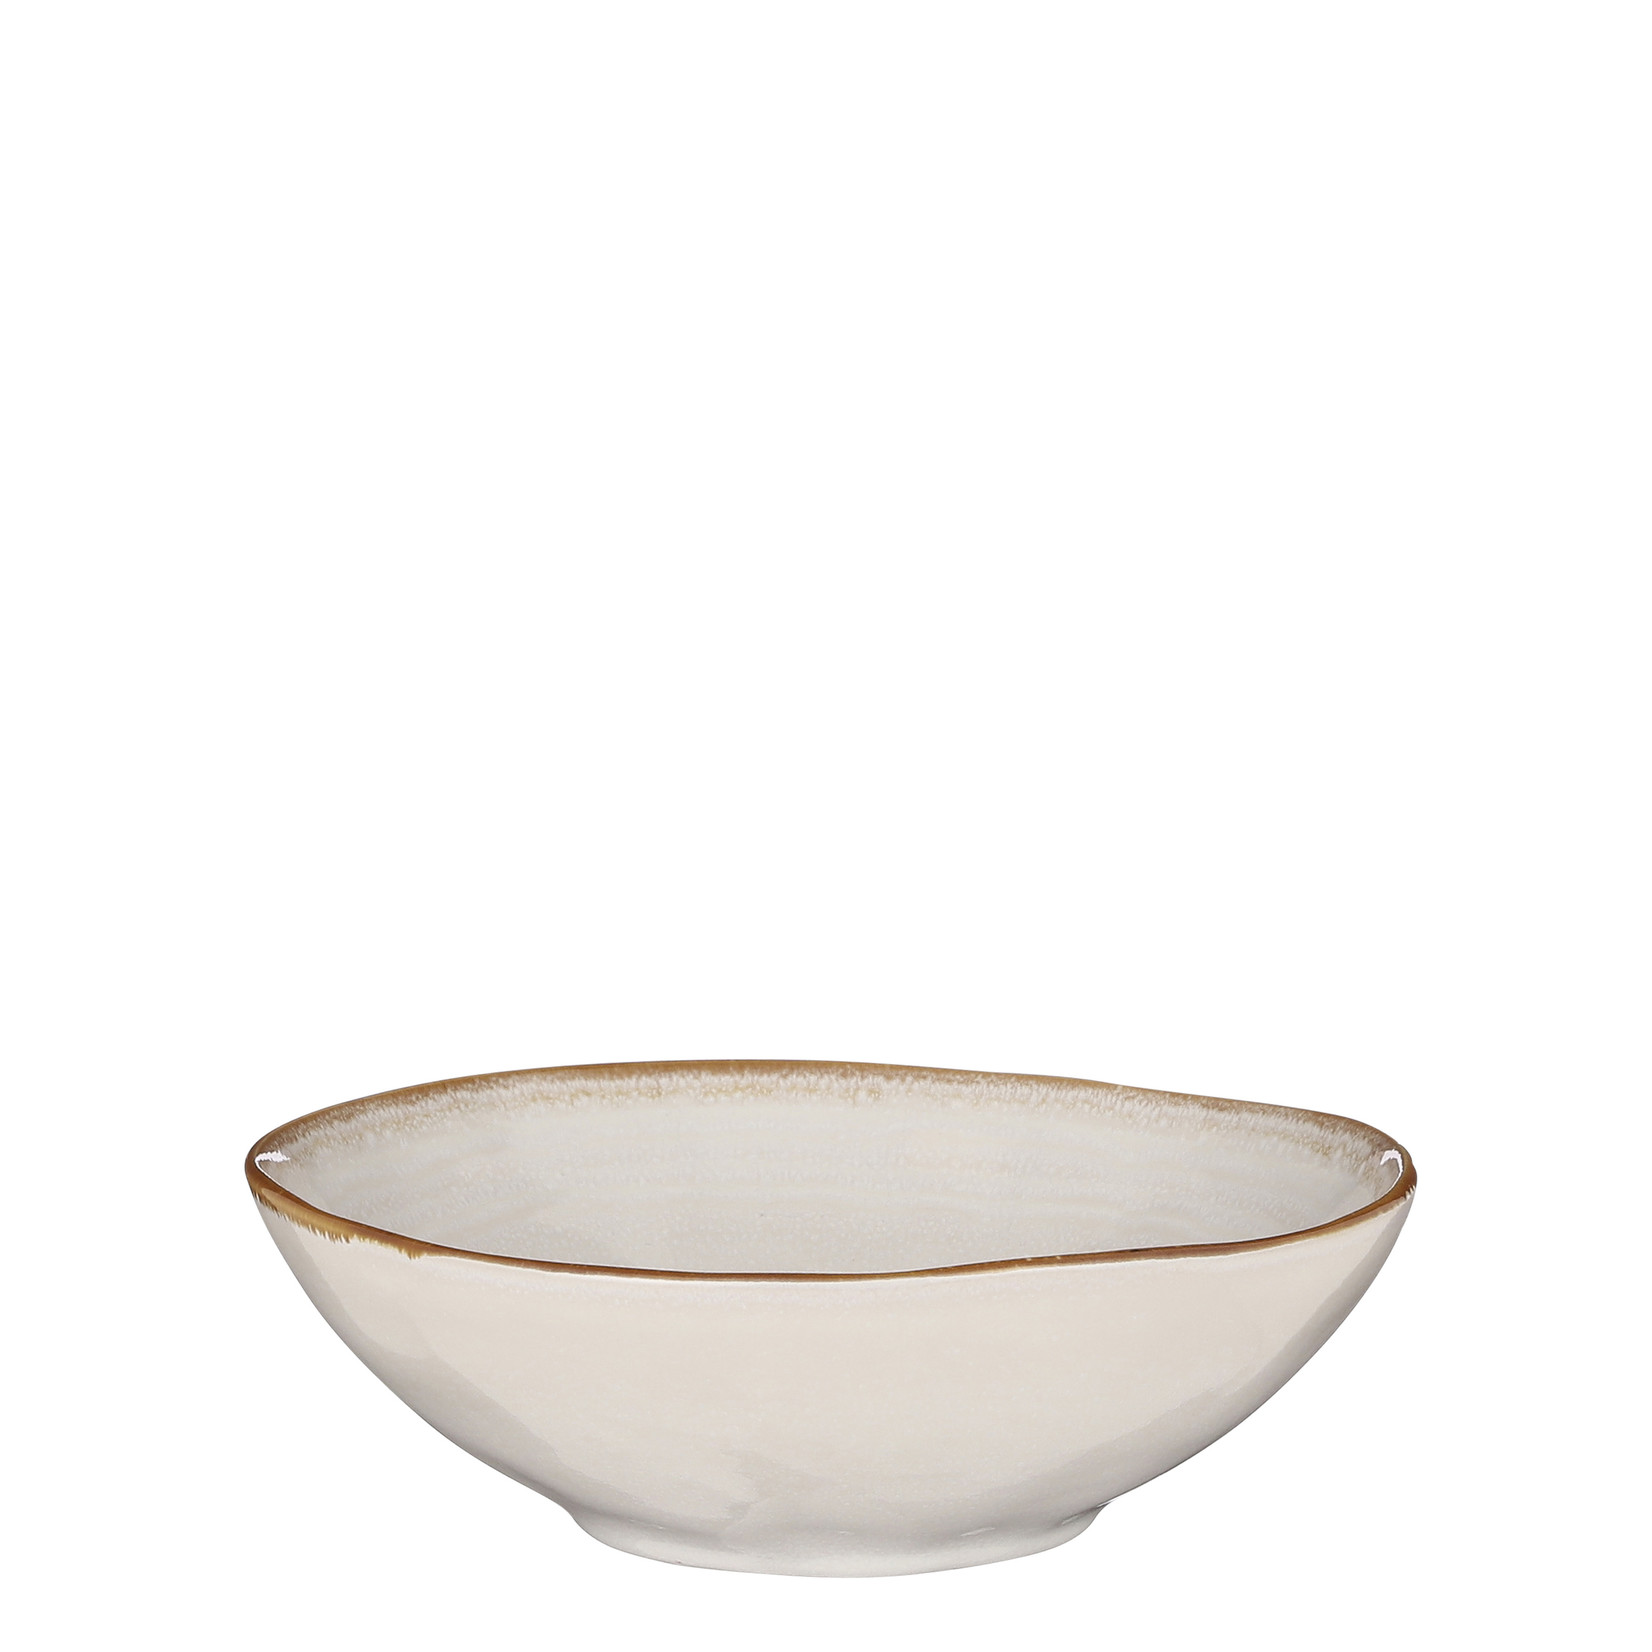 MiCa Tabo schaal wit